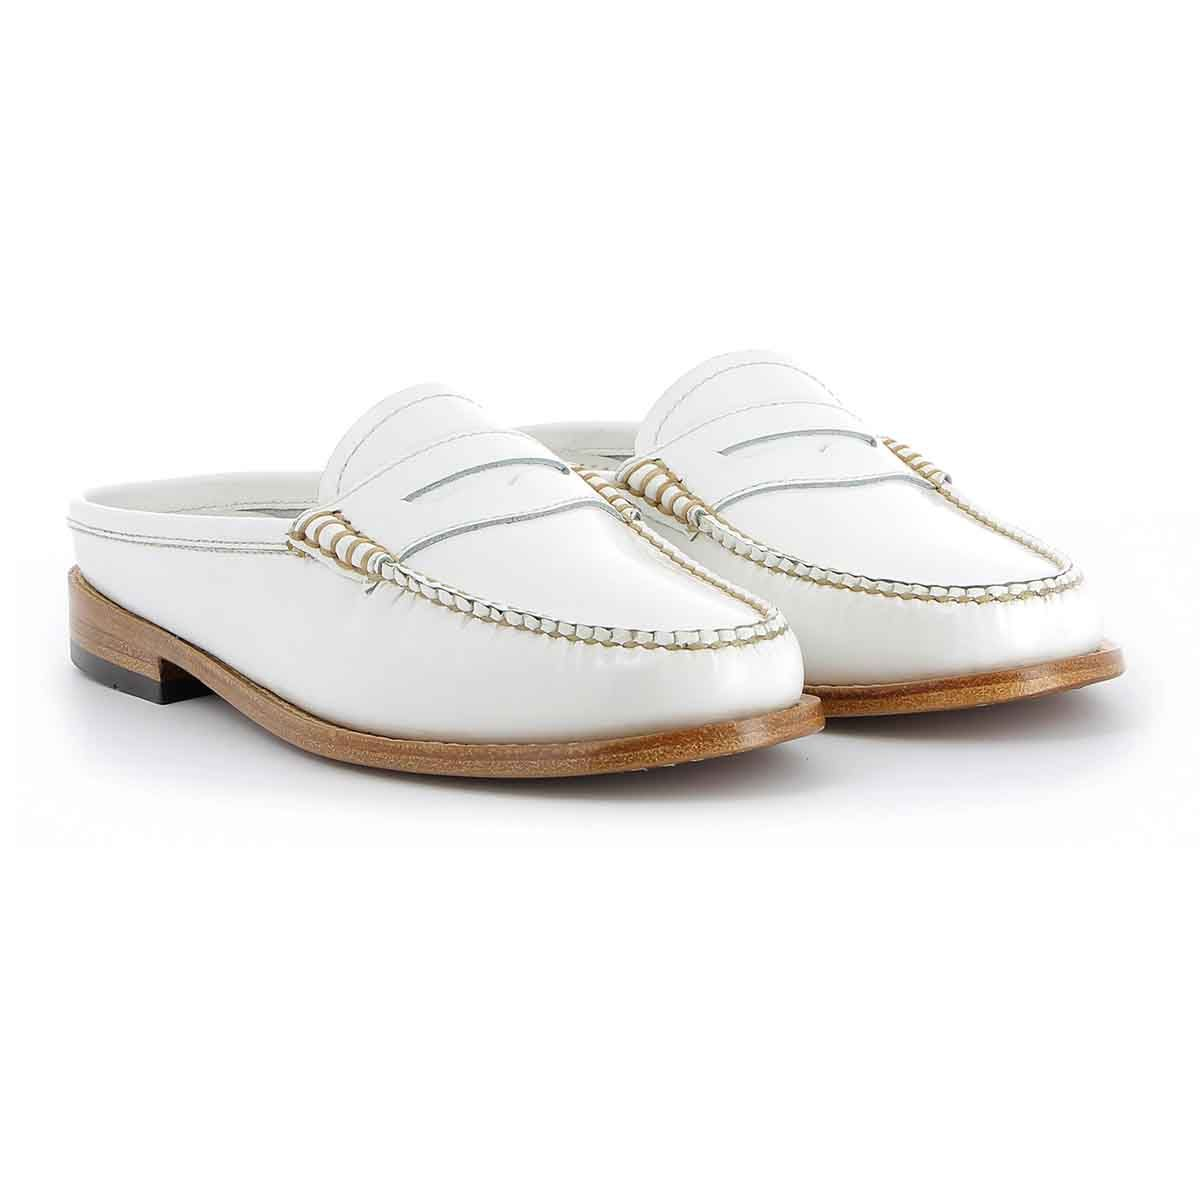 76cac0979b0 Weejuns Penny Slide Mule White Leather Loafer Mules